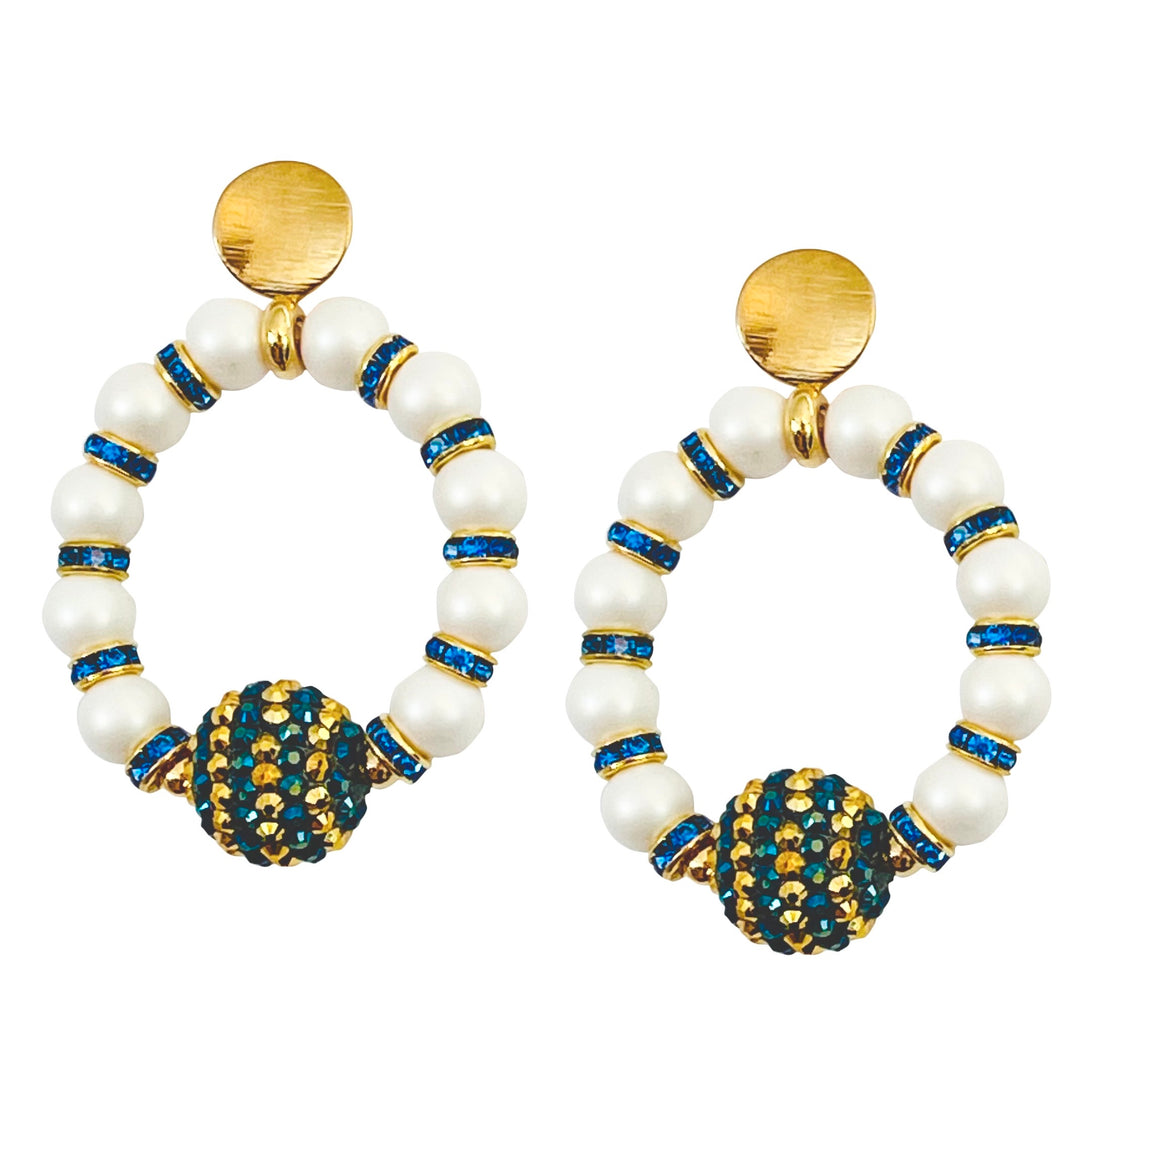 RING EARRING IN PEARL WITH BLUE AND GOLD STRIPED FOCAL